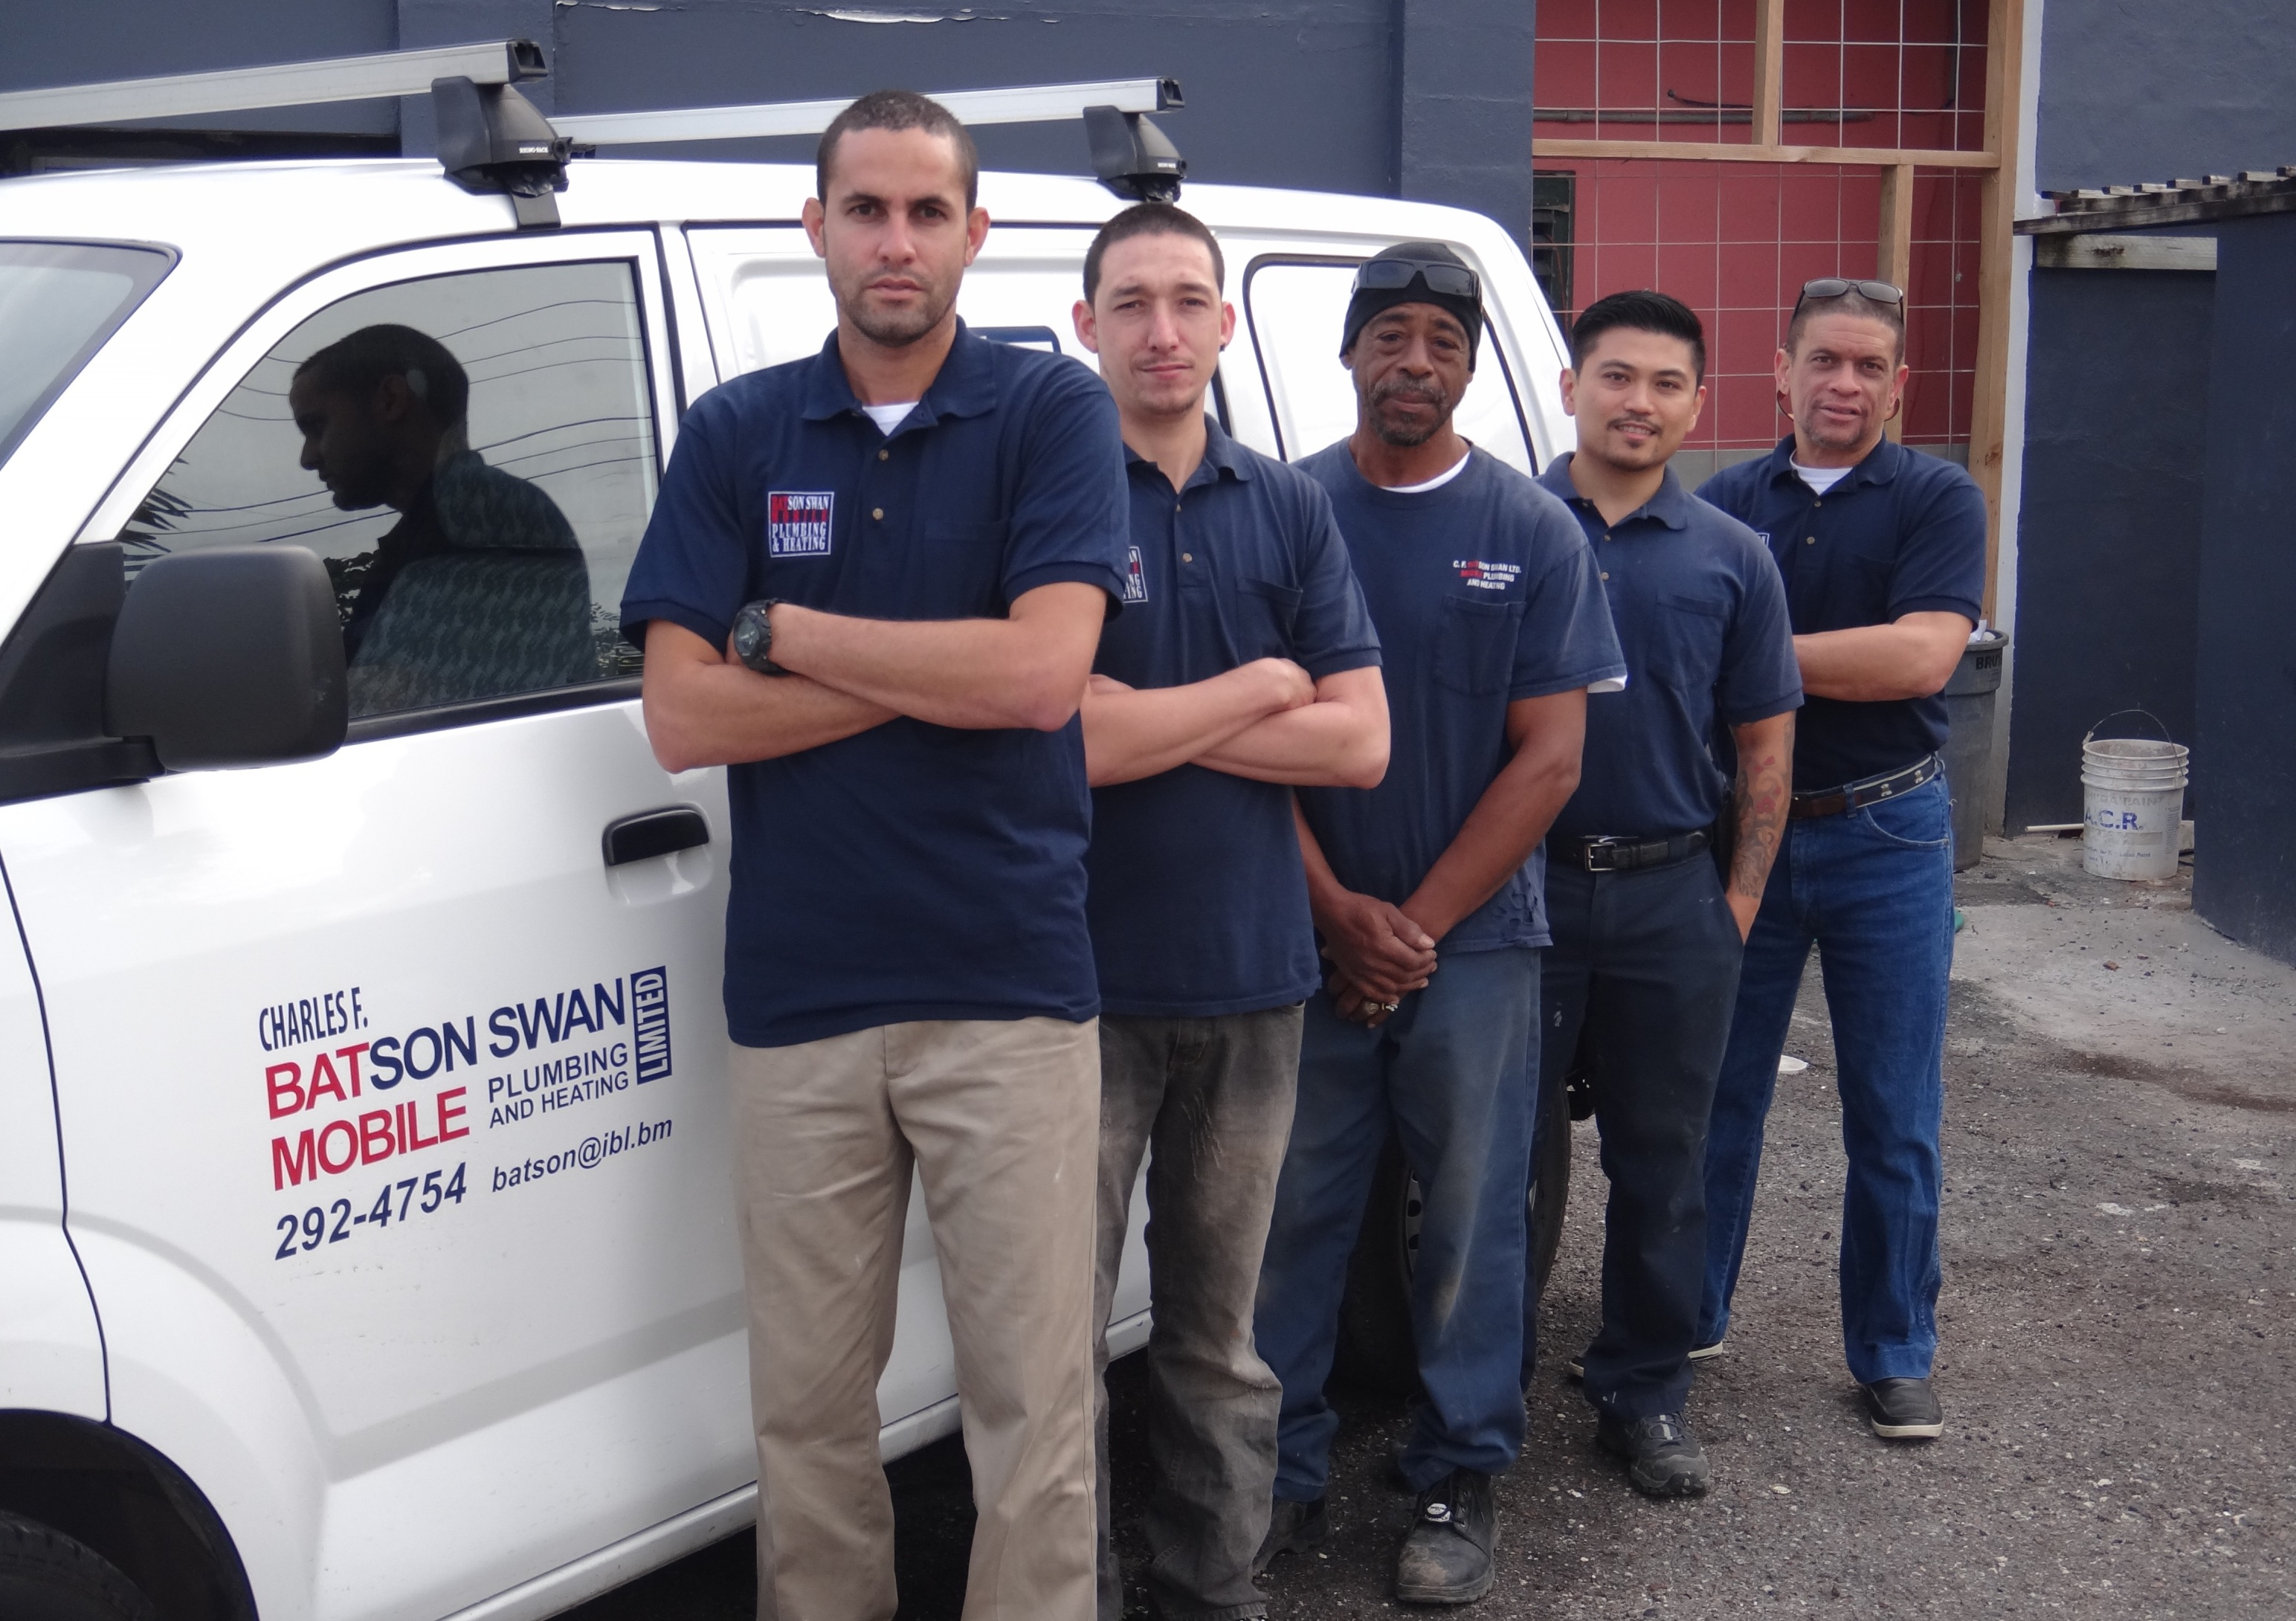 C.F. Batson Swan Ltd. - Mobile Plumbing & Heating